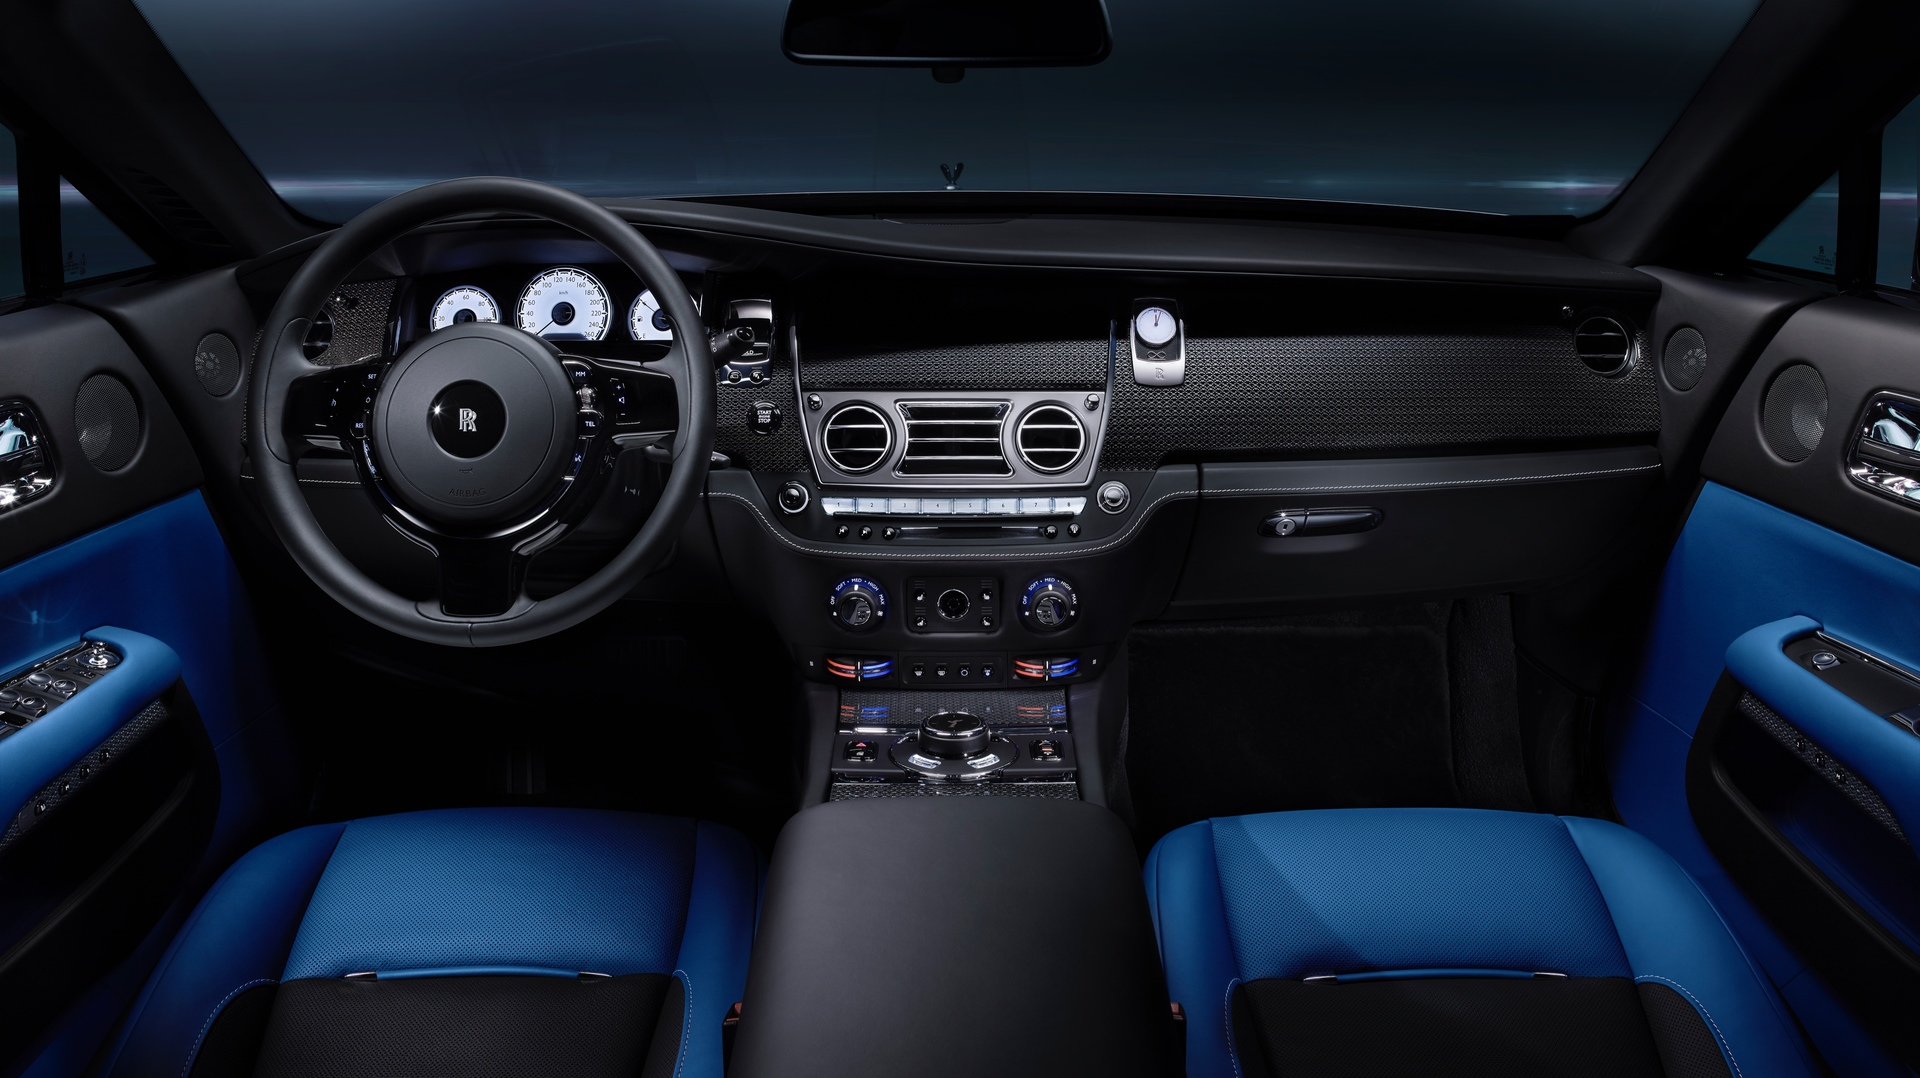 The interior of a Rolls-Royce Black Badge Wraith showing the steering wheel and dashboard from the front passenger and drivers perspective.